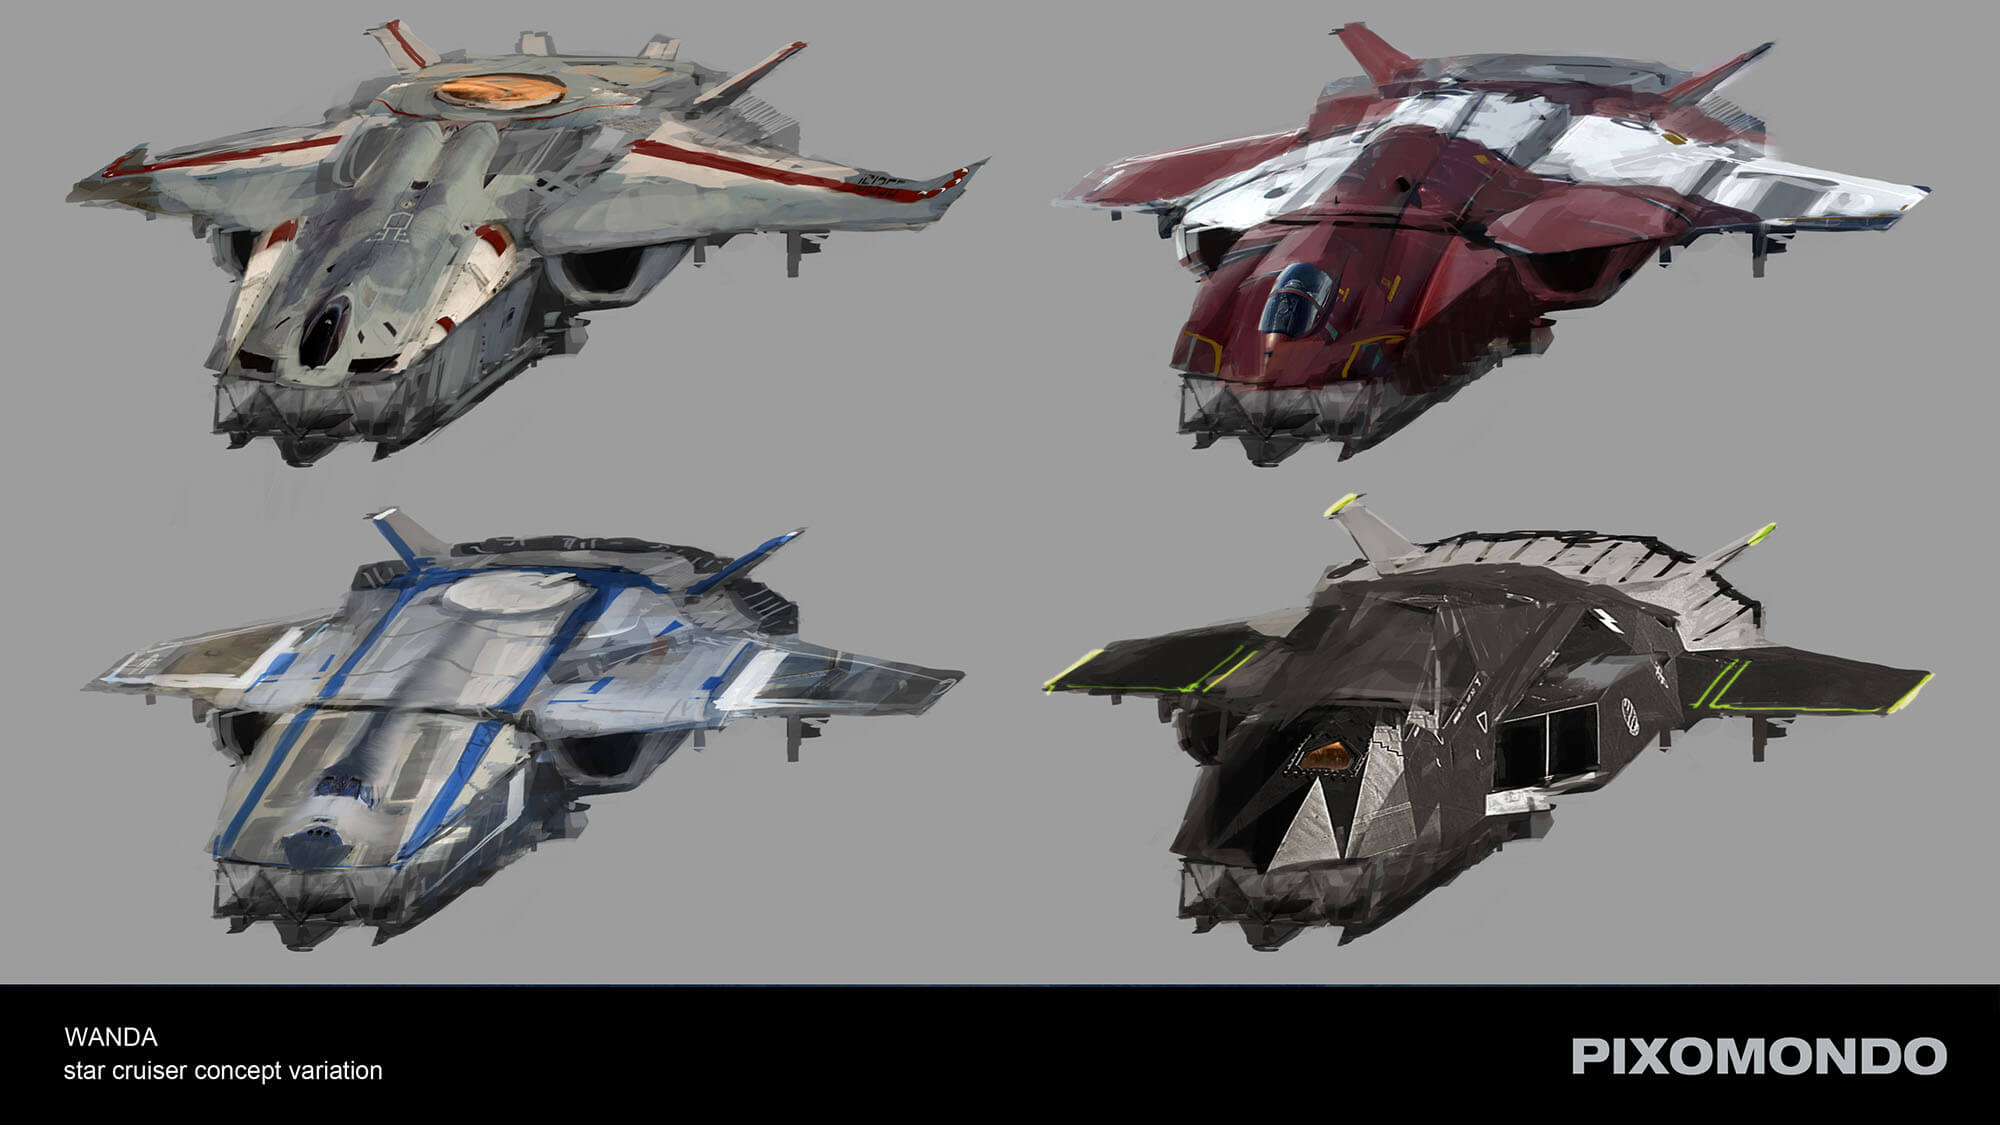 vehicle-concept-wanda-pixomondo-felix-botho-haas-cruiserA-v004f_color